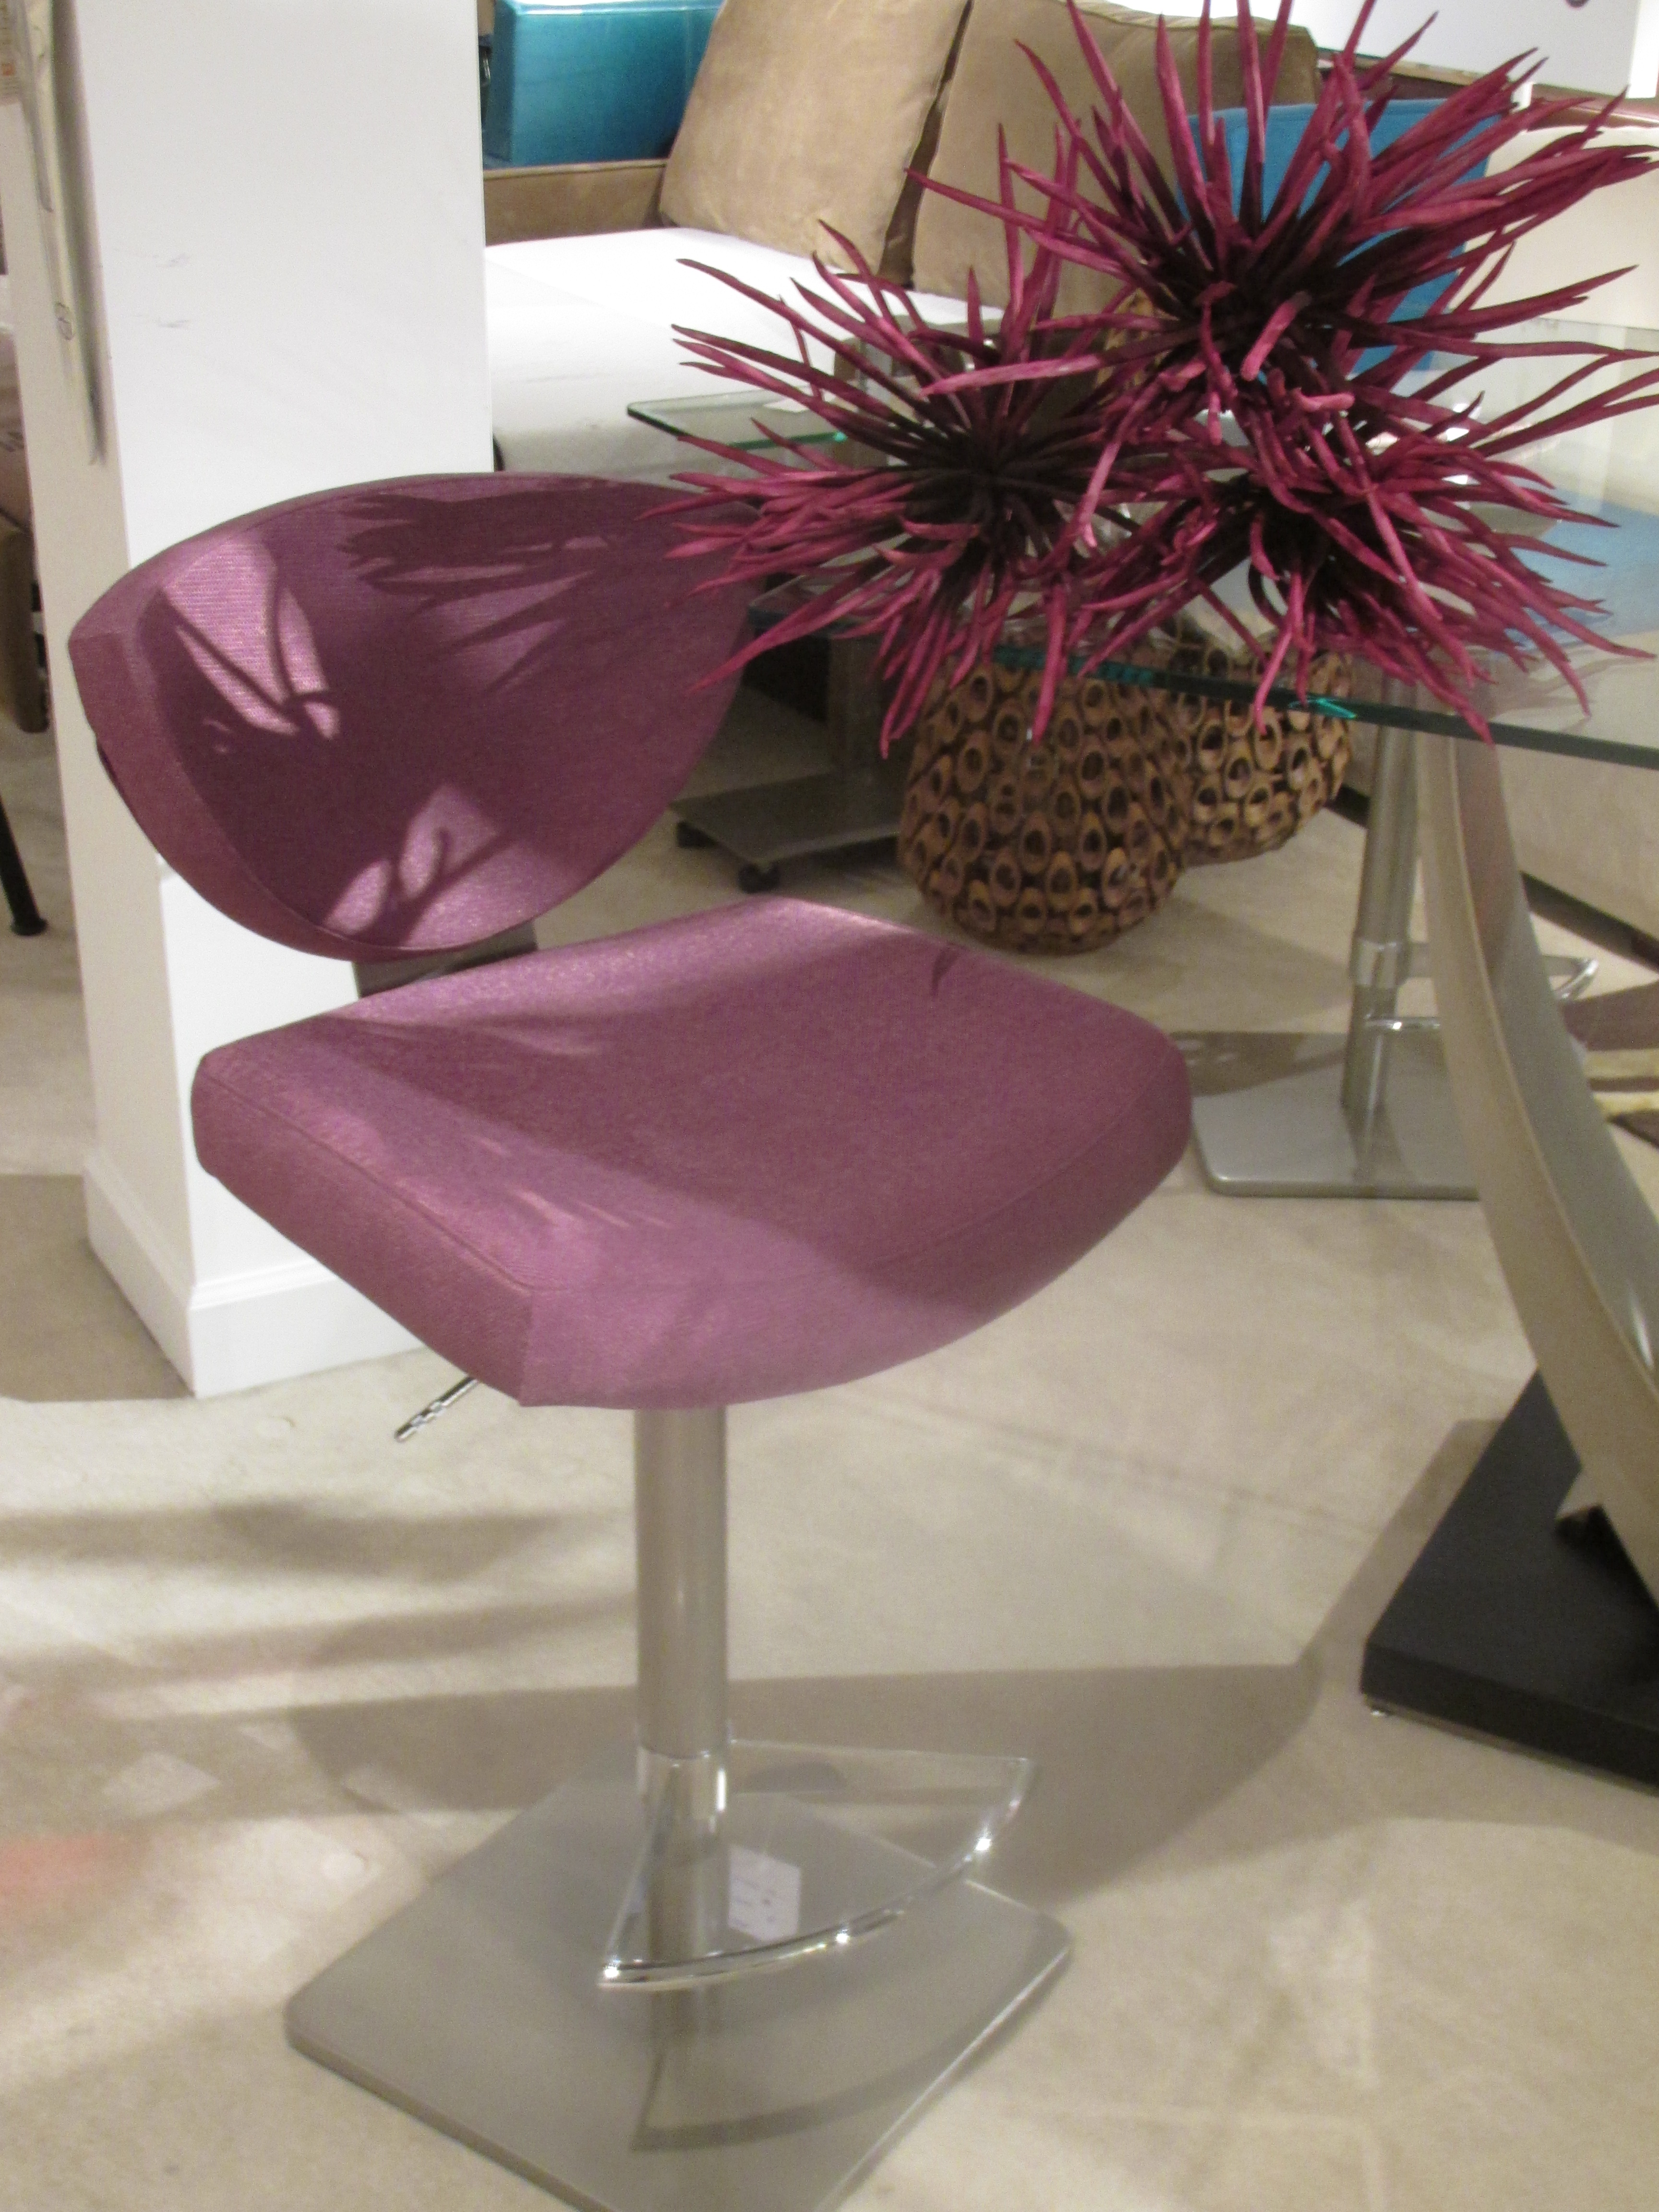 Add distinction to your kitchen or any casual dining area with sleek and stylish bar stools covered in this year's fresh fabric. Found at Reflections Home Furnishings.